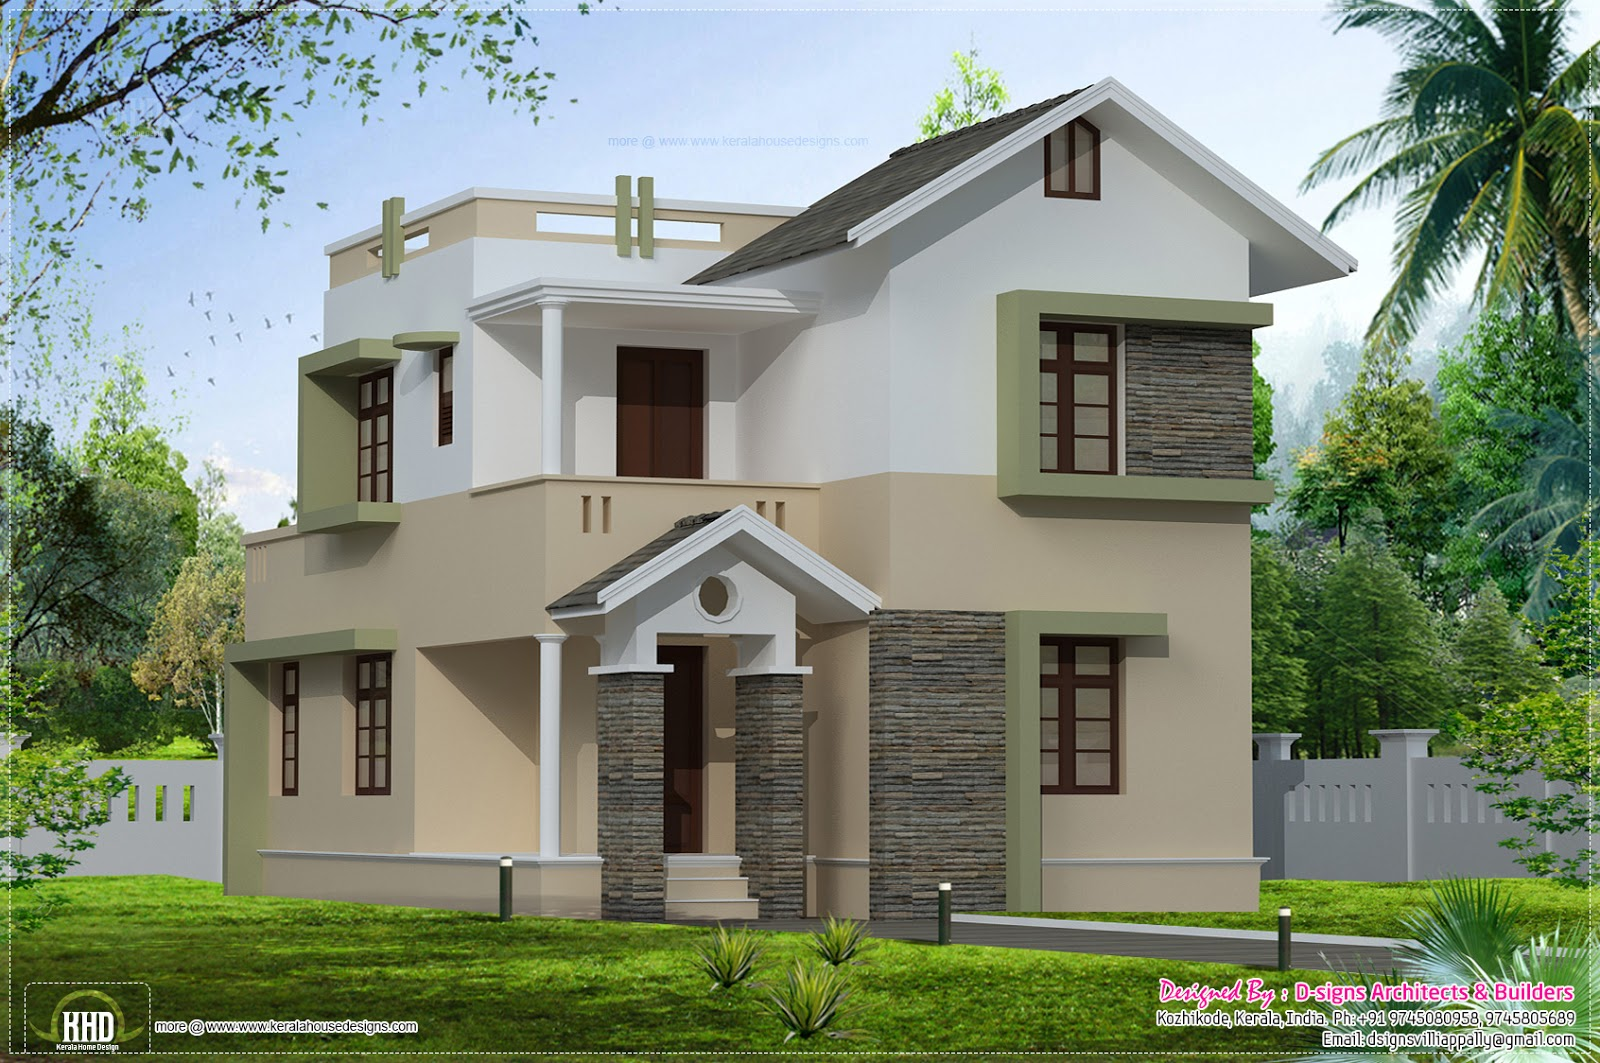 Small villa plans omahdesigns net for Villa plans and designs